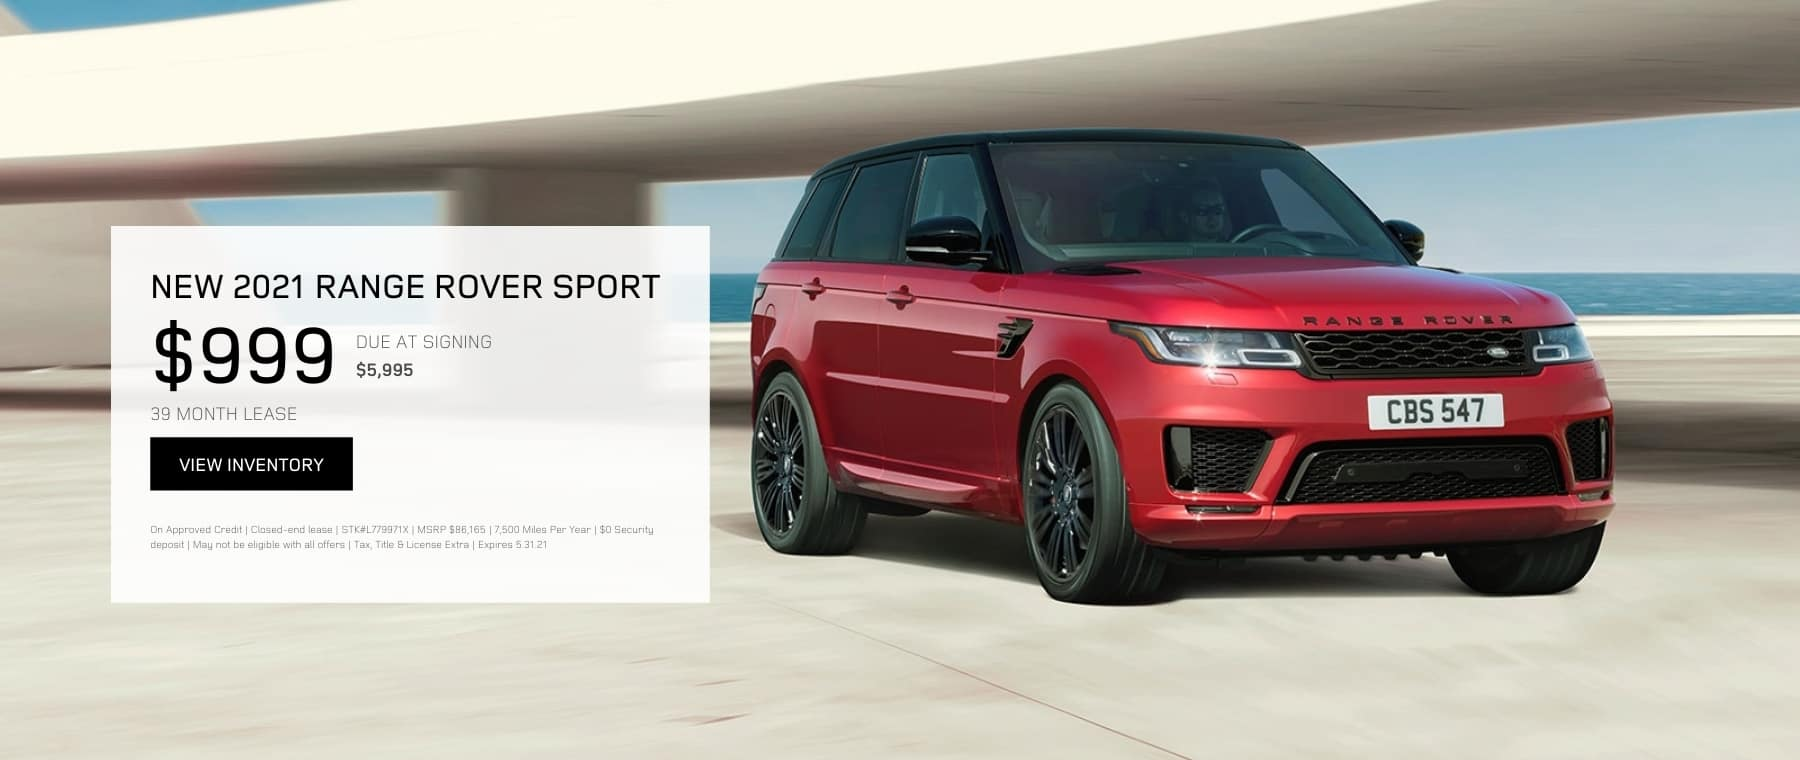 MAY RANGE ROVER SPORT OFFER